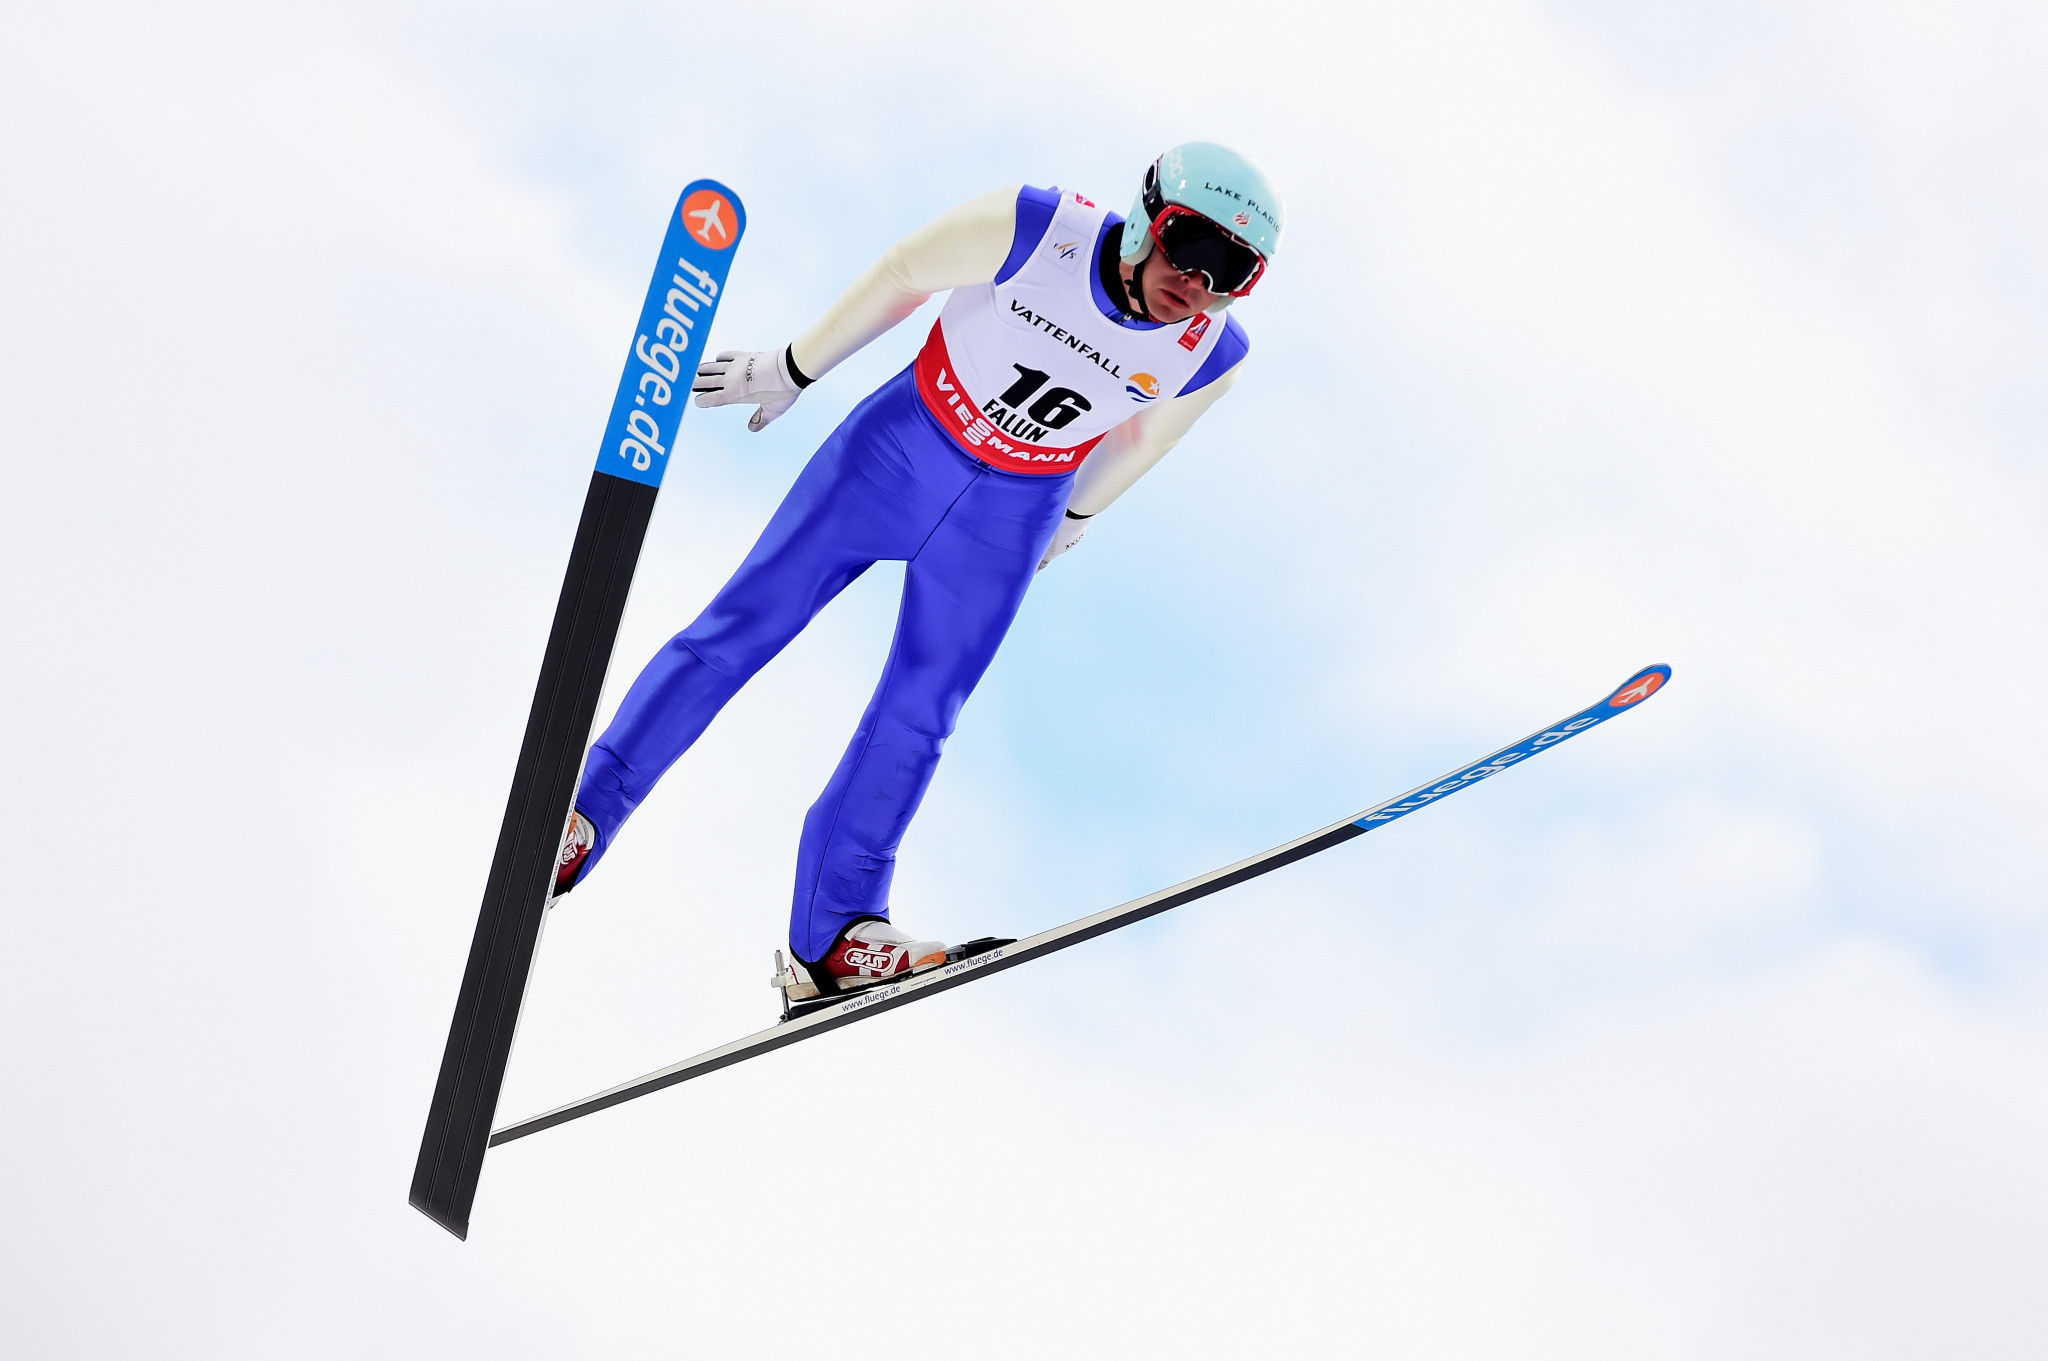 USA Nordic executive director Billy Demong said Michigan's award of the 2021 FIS Ski Jumping World Cup would be transformational for the region ©Getty Images